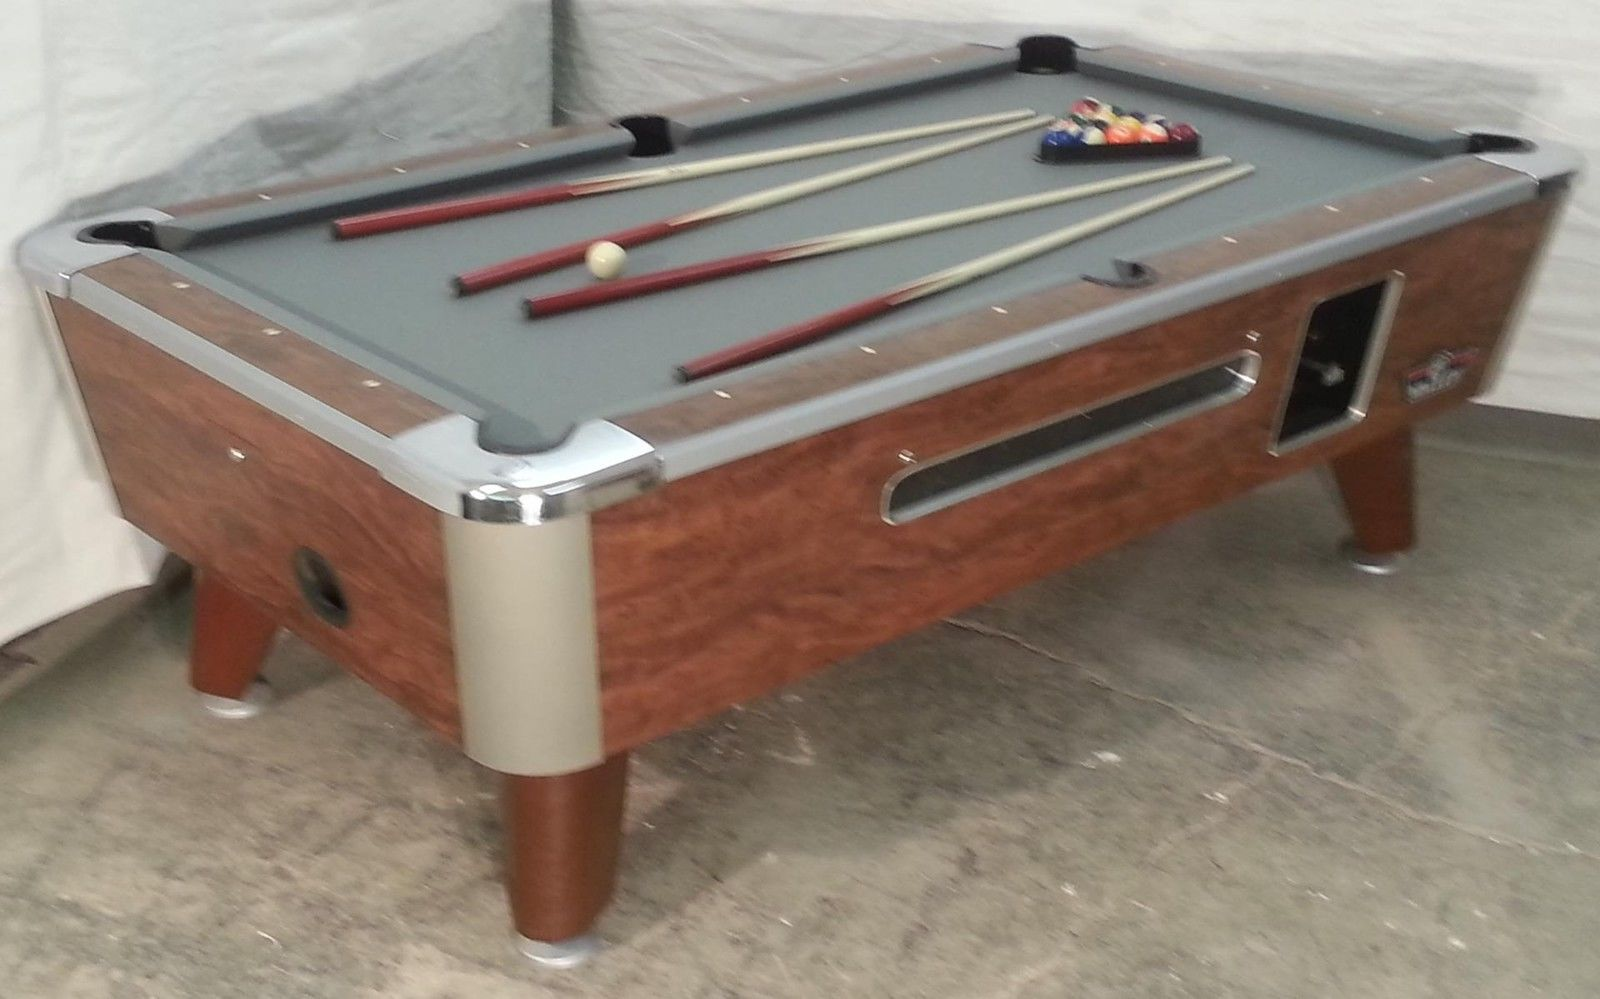 Valley commercial 7 coin op bar size pool table model zd 5 refurb valley commercial 7 coin op bar size pool table model zd 5 refurb watchthetrailerfo